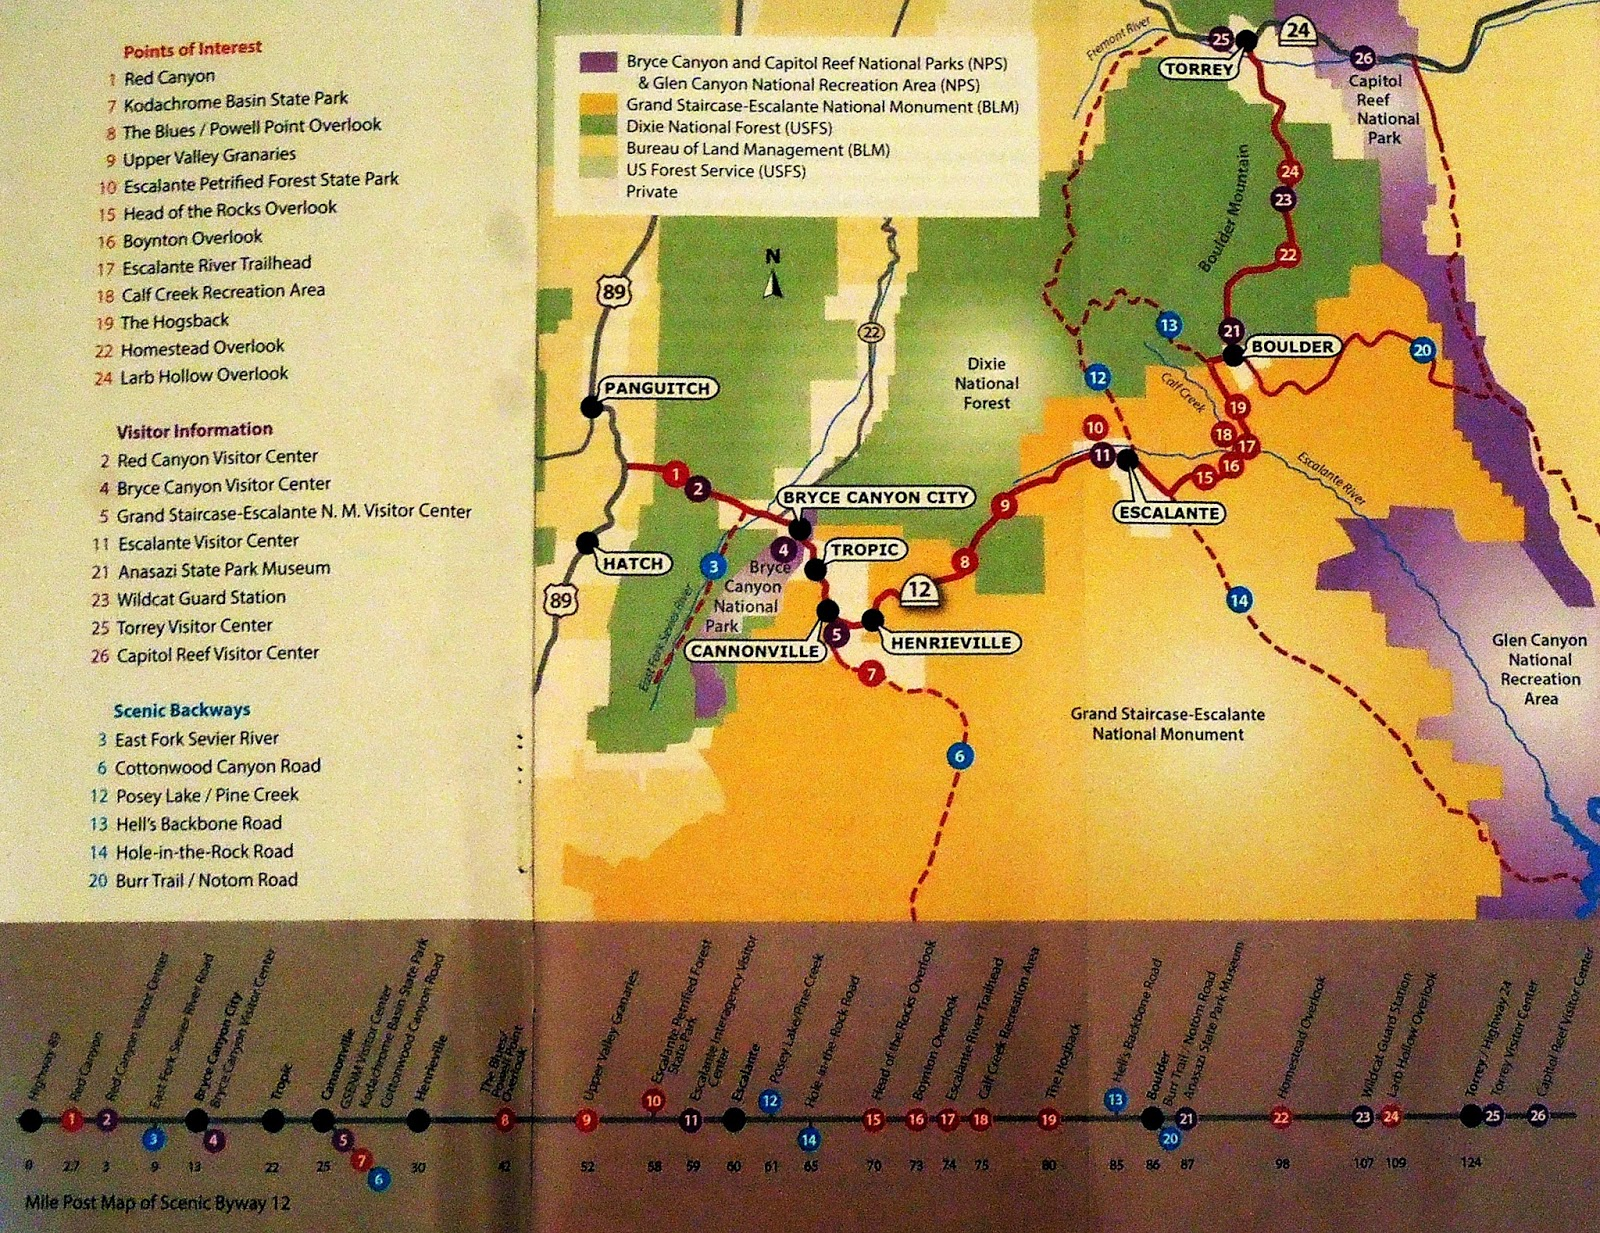 Focusing On Travel : An All American Road - Scenic UT 12 on us route 95 map, us route 32 map, us route 24 map, us i-71 map, us route 11 map, us route 202 map, los angeles highway map, us route 13 map, us route 33 map, 71 in missouri us map, us interstate 25 map, us route 15 map, us interstate 35 map, us route 60 map, us hwy map, colorado river on us map, us route 35 map, us interstate 75 map, north cascades highway map,